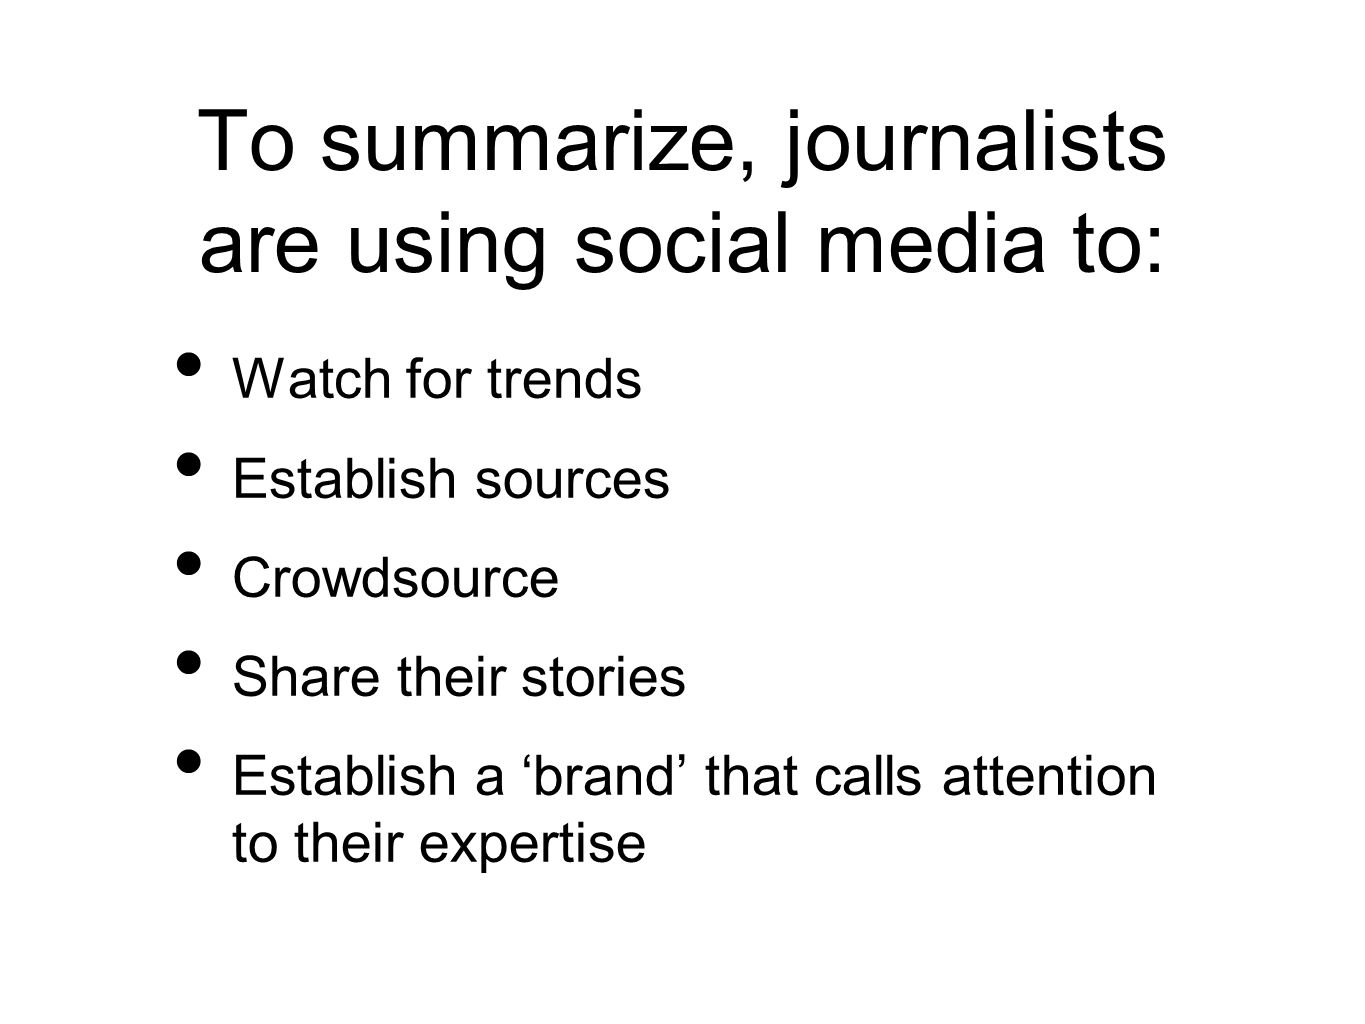 To summarize, journalists are using social media to: Watch for trends Establish sources Crowdsource Share their stories Establish a 'brand' that calls attention to their expertise